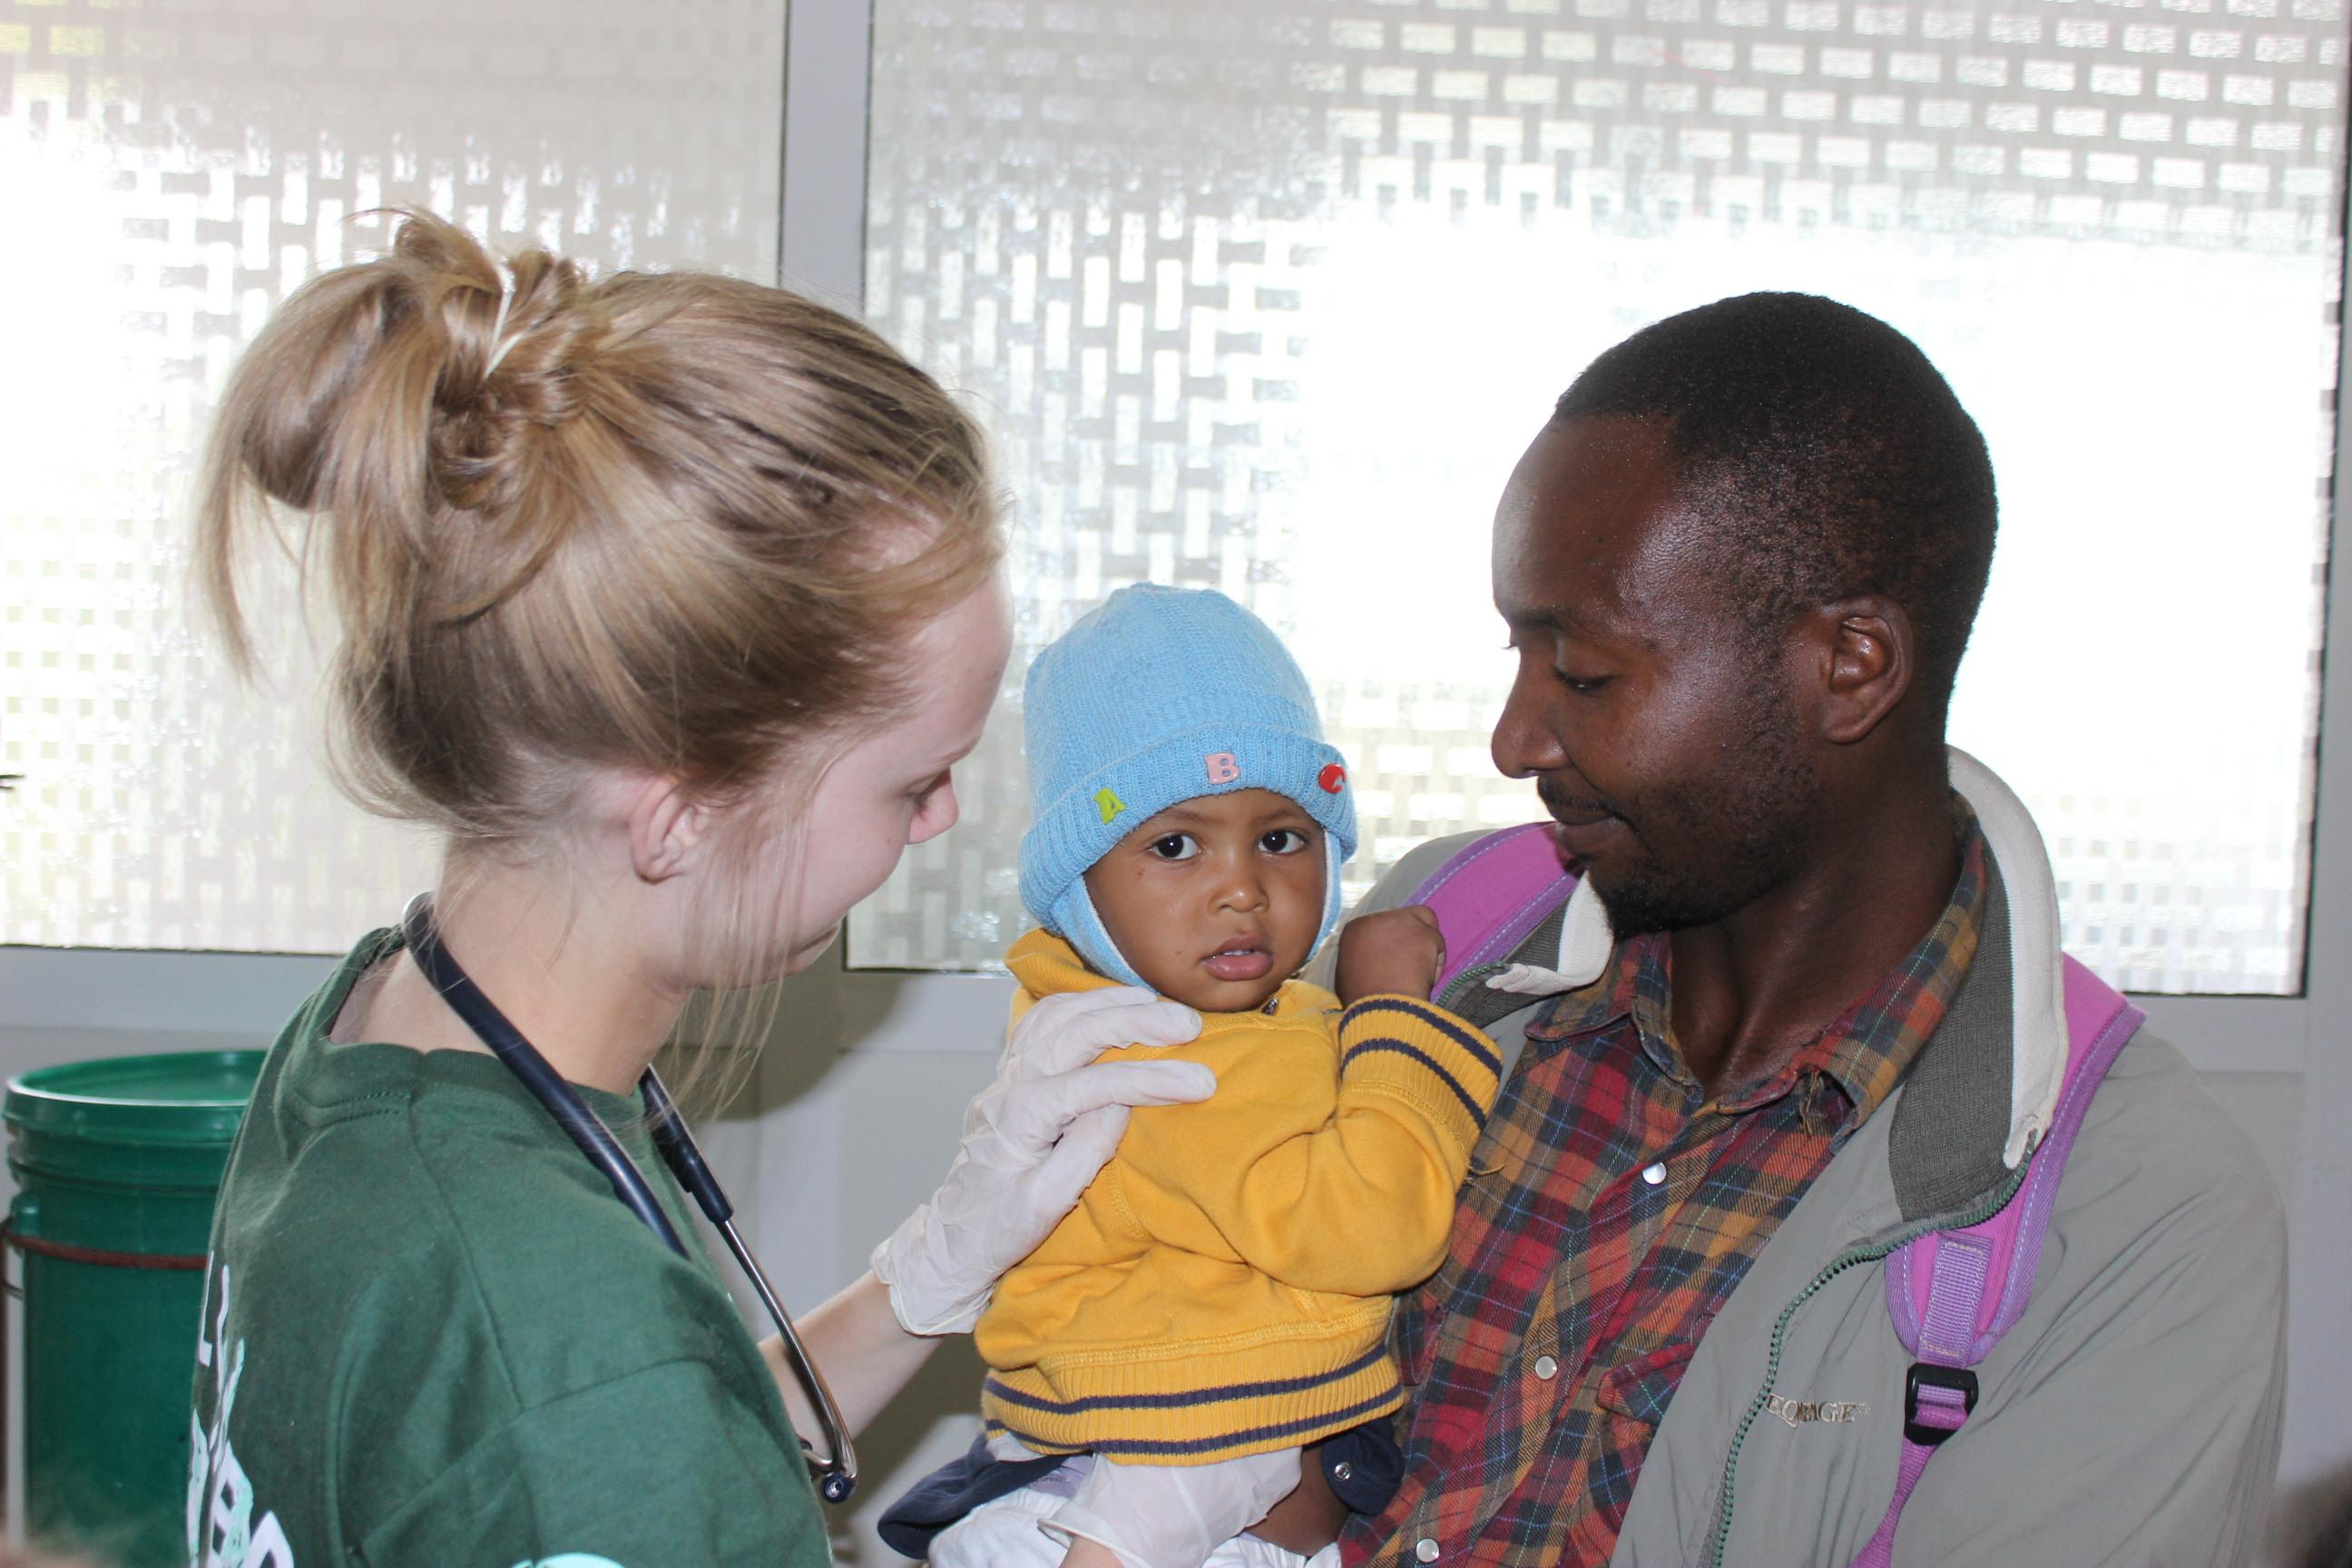 Projects Abroad intern checking a baby's heart beat during her midwifery internship in Tanzania.